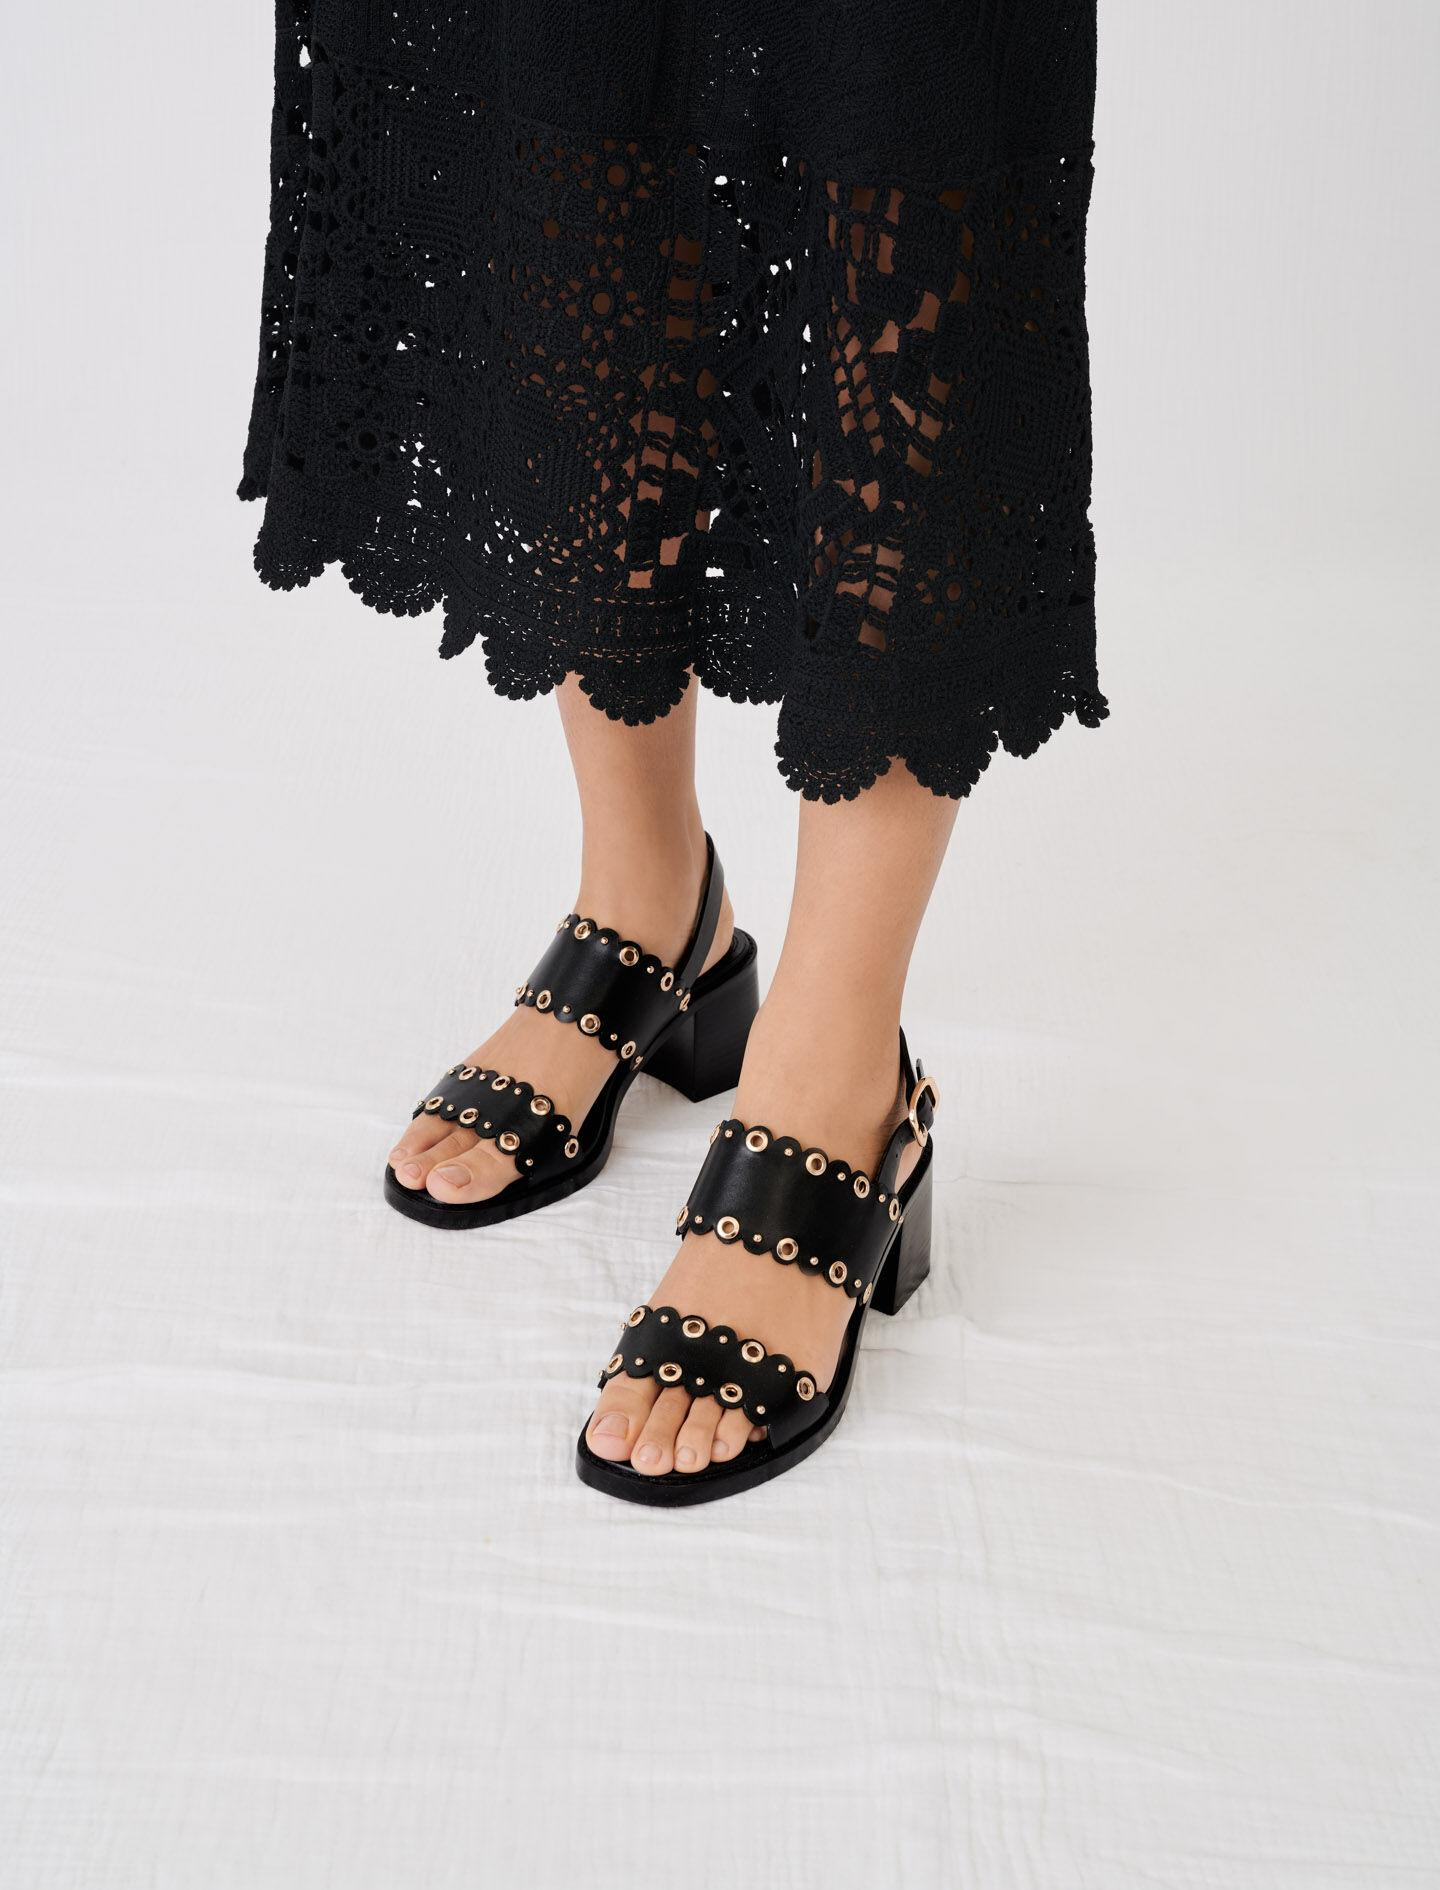 HIGH-HEELED LEATHER SANDALS WITH EYELETS 5